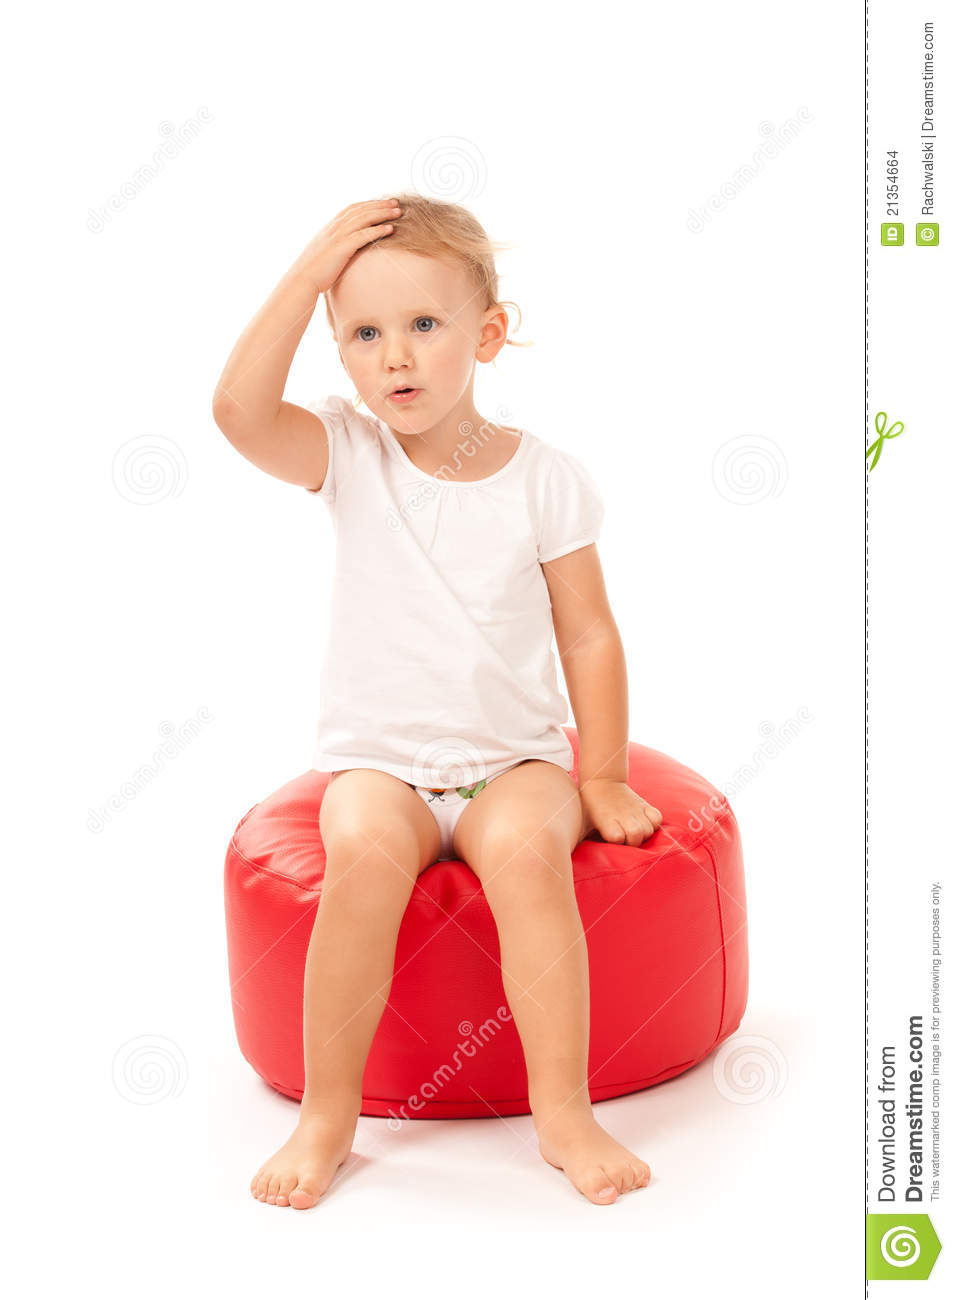 Little Girl Sitting On A Red Pouf Stock Photo